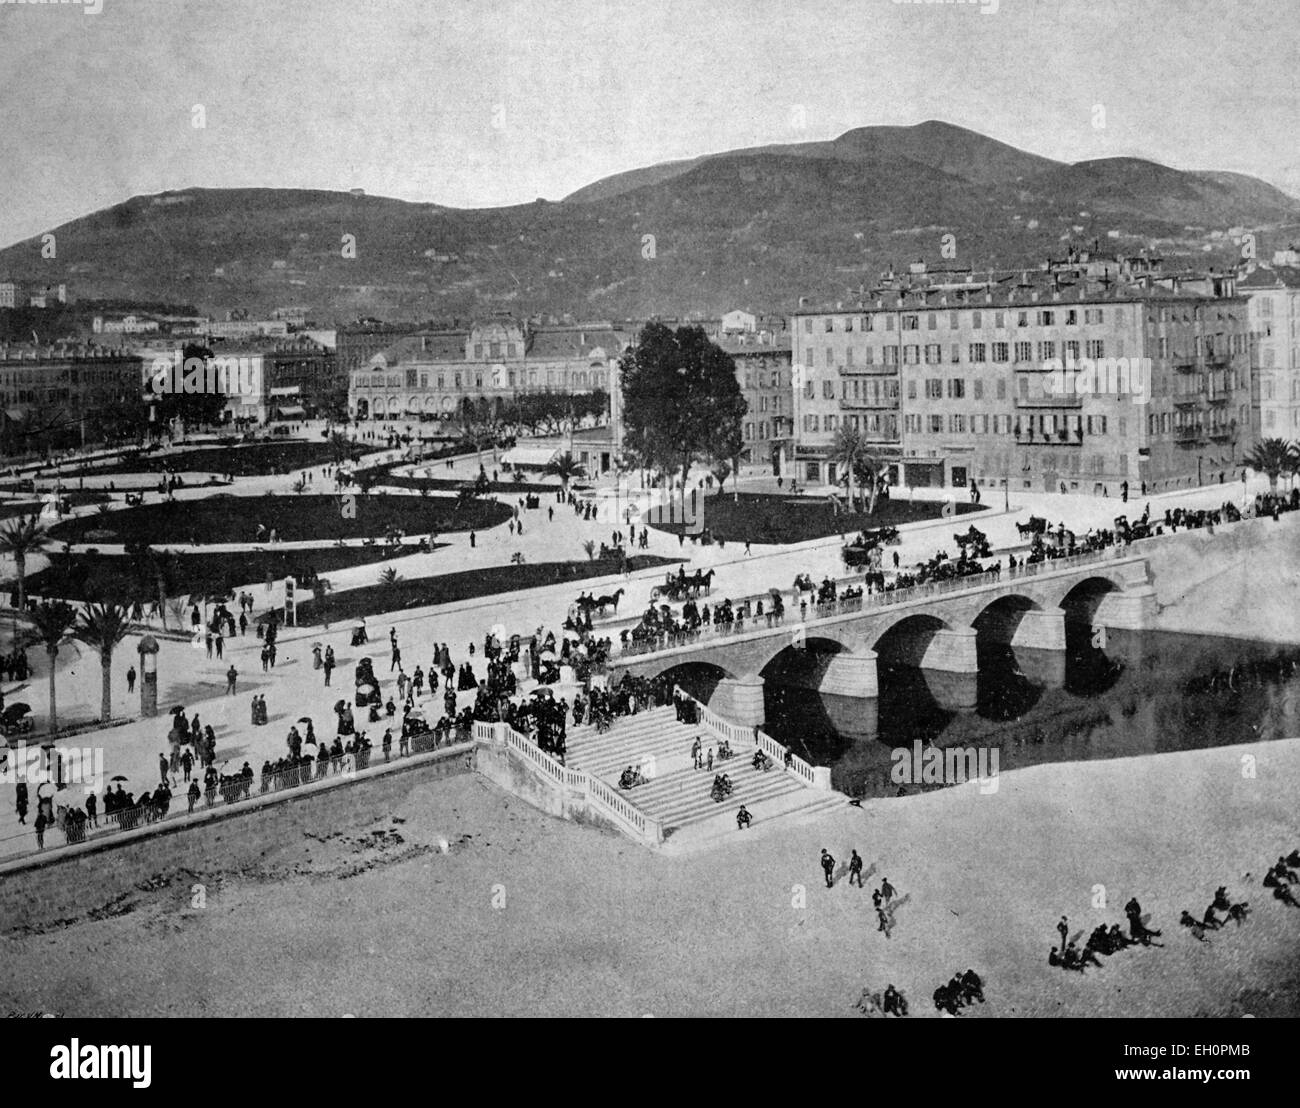 Early autotype of the Le Jardin Public park, Nice, France, historical photo, 1884 - Stock Image